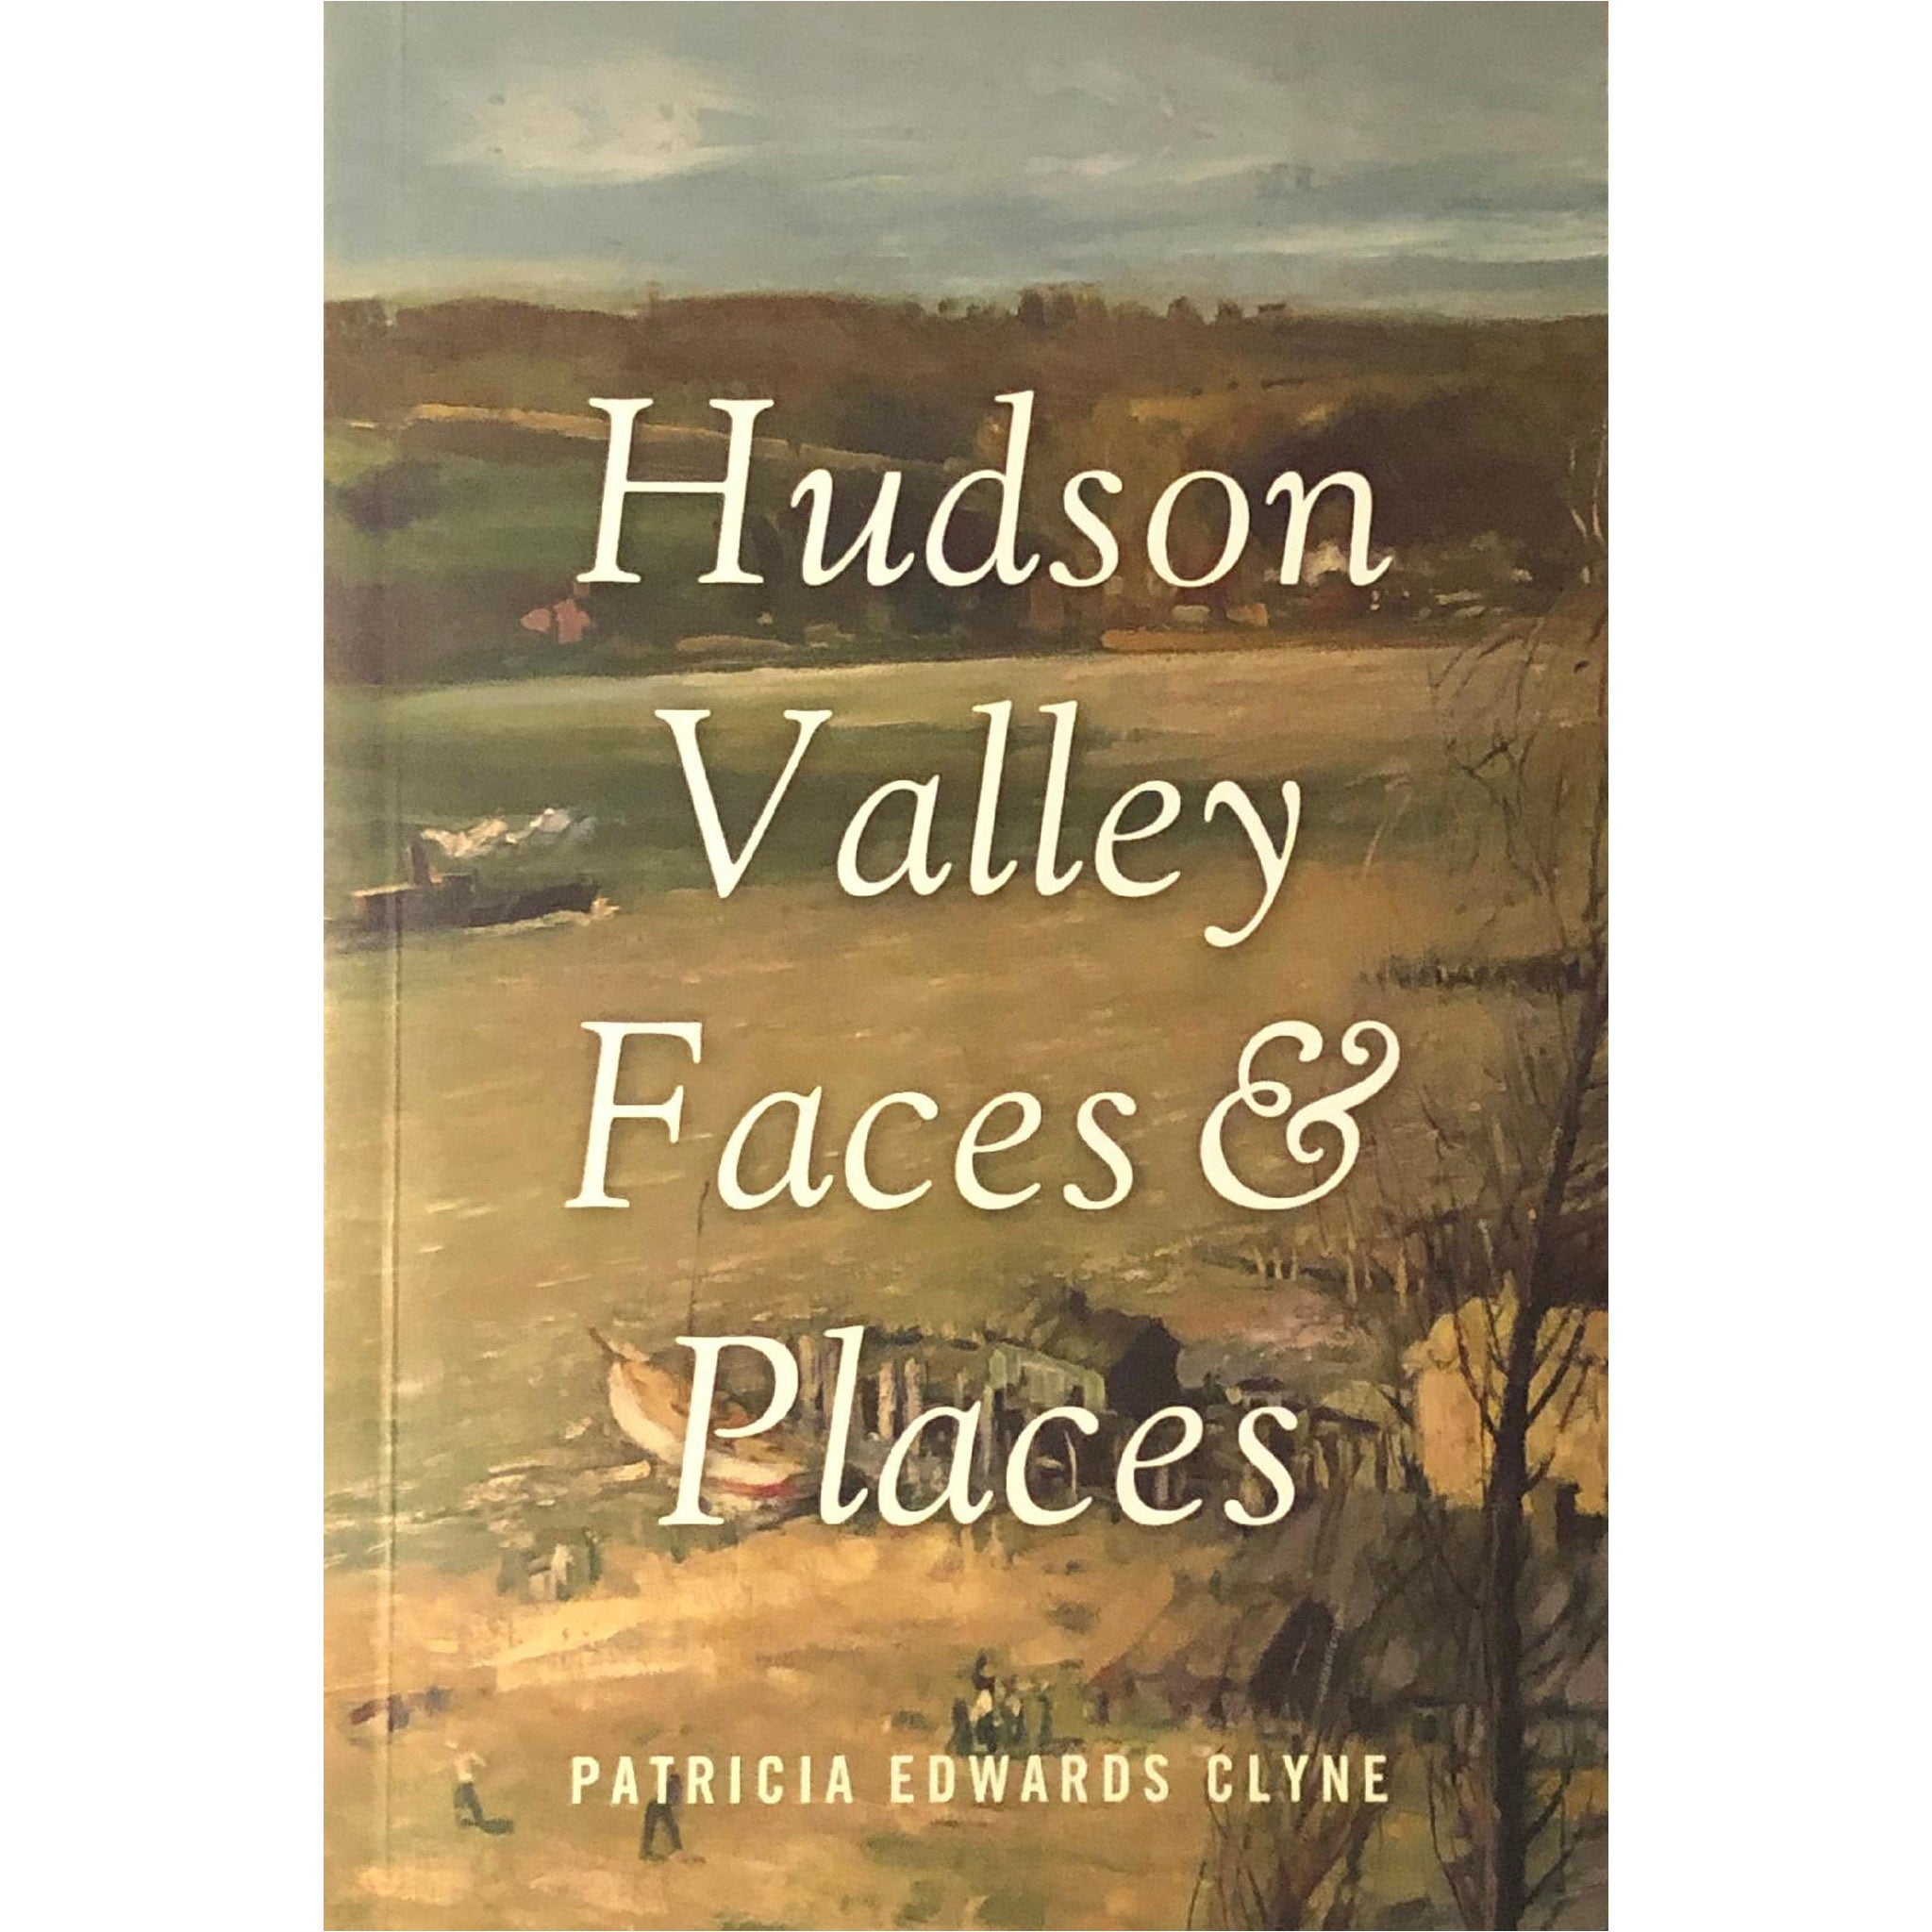 Hudson Valley Faces & Places